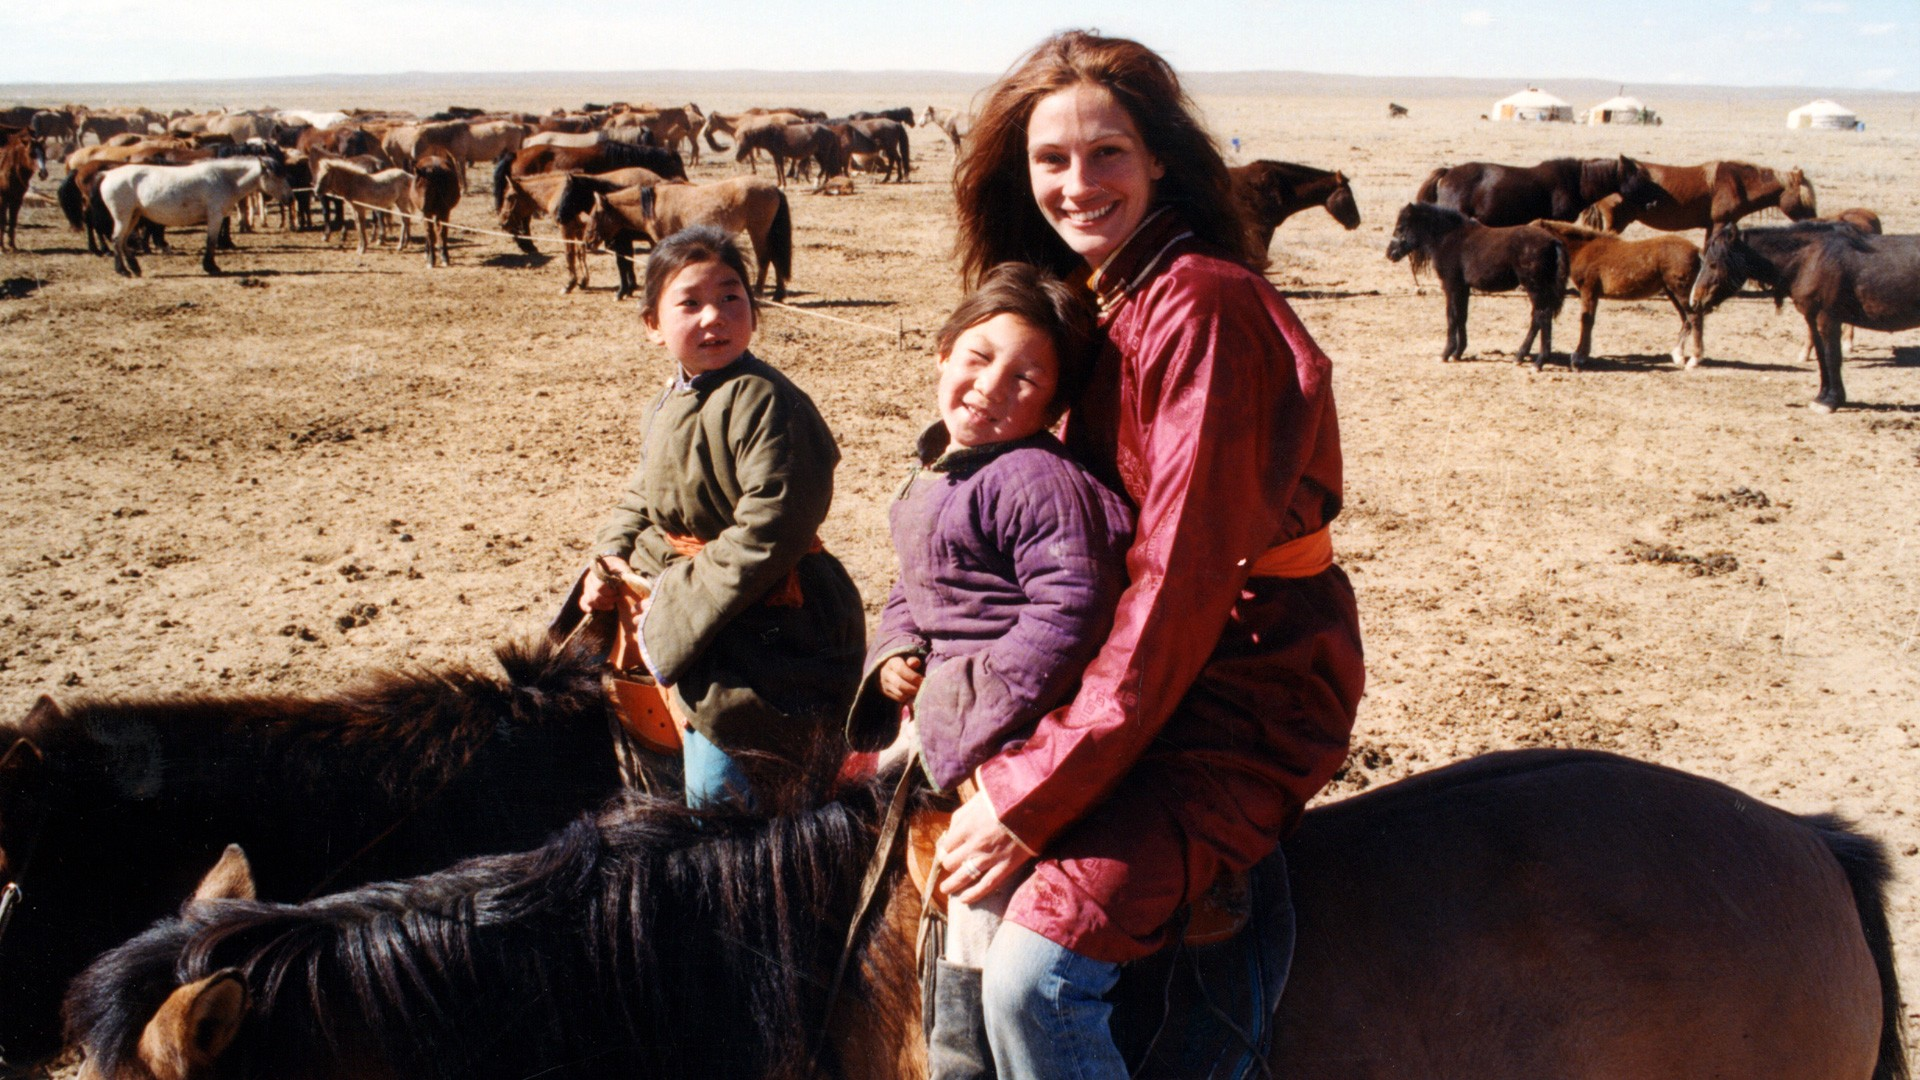 Internationally acclaimed superstar actress Julia Roberts visited Mongolia in 1999